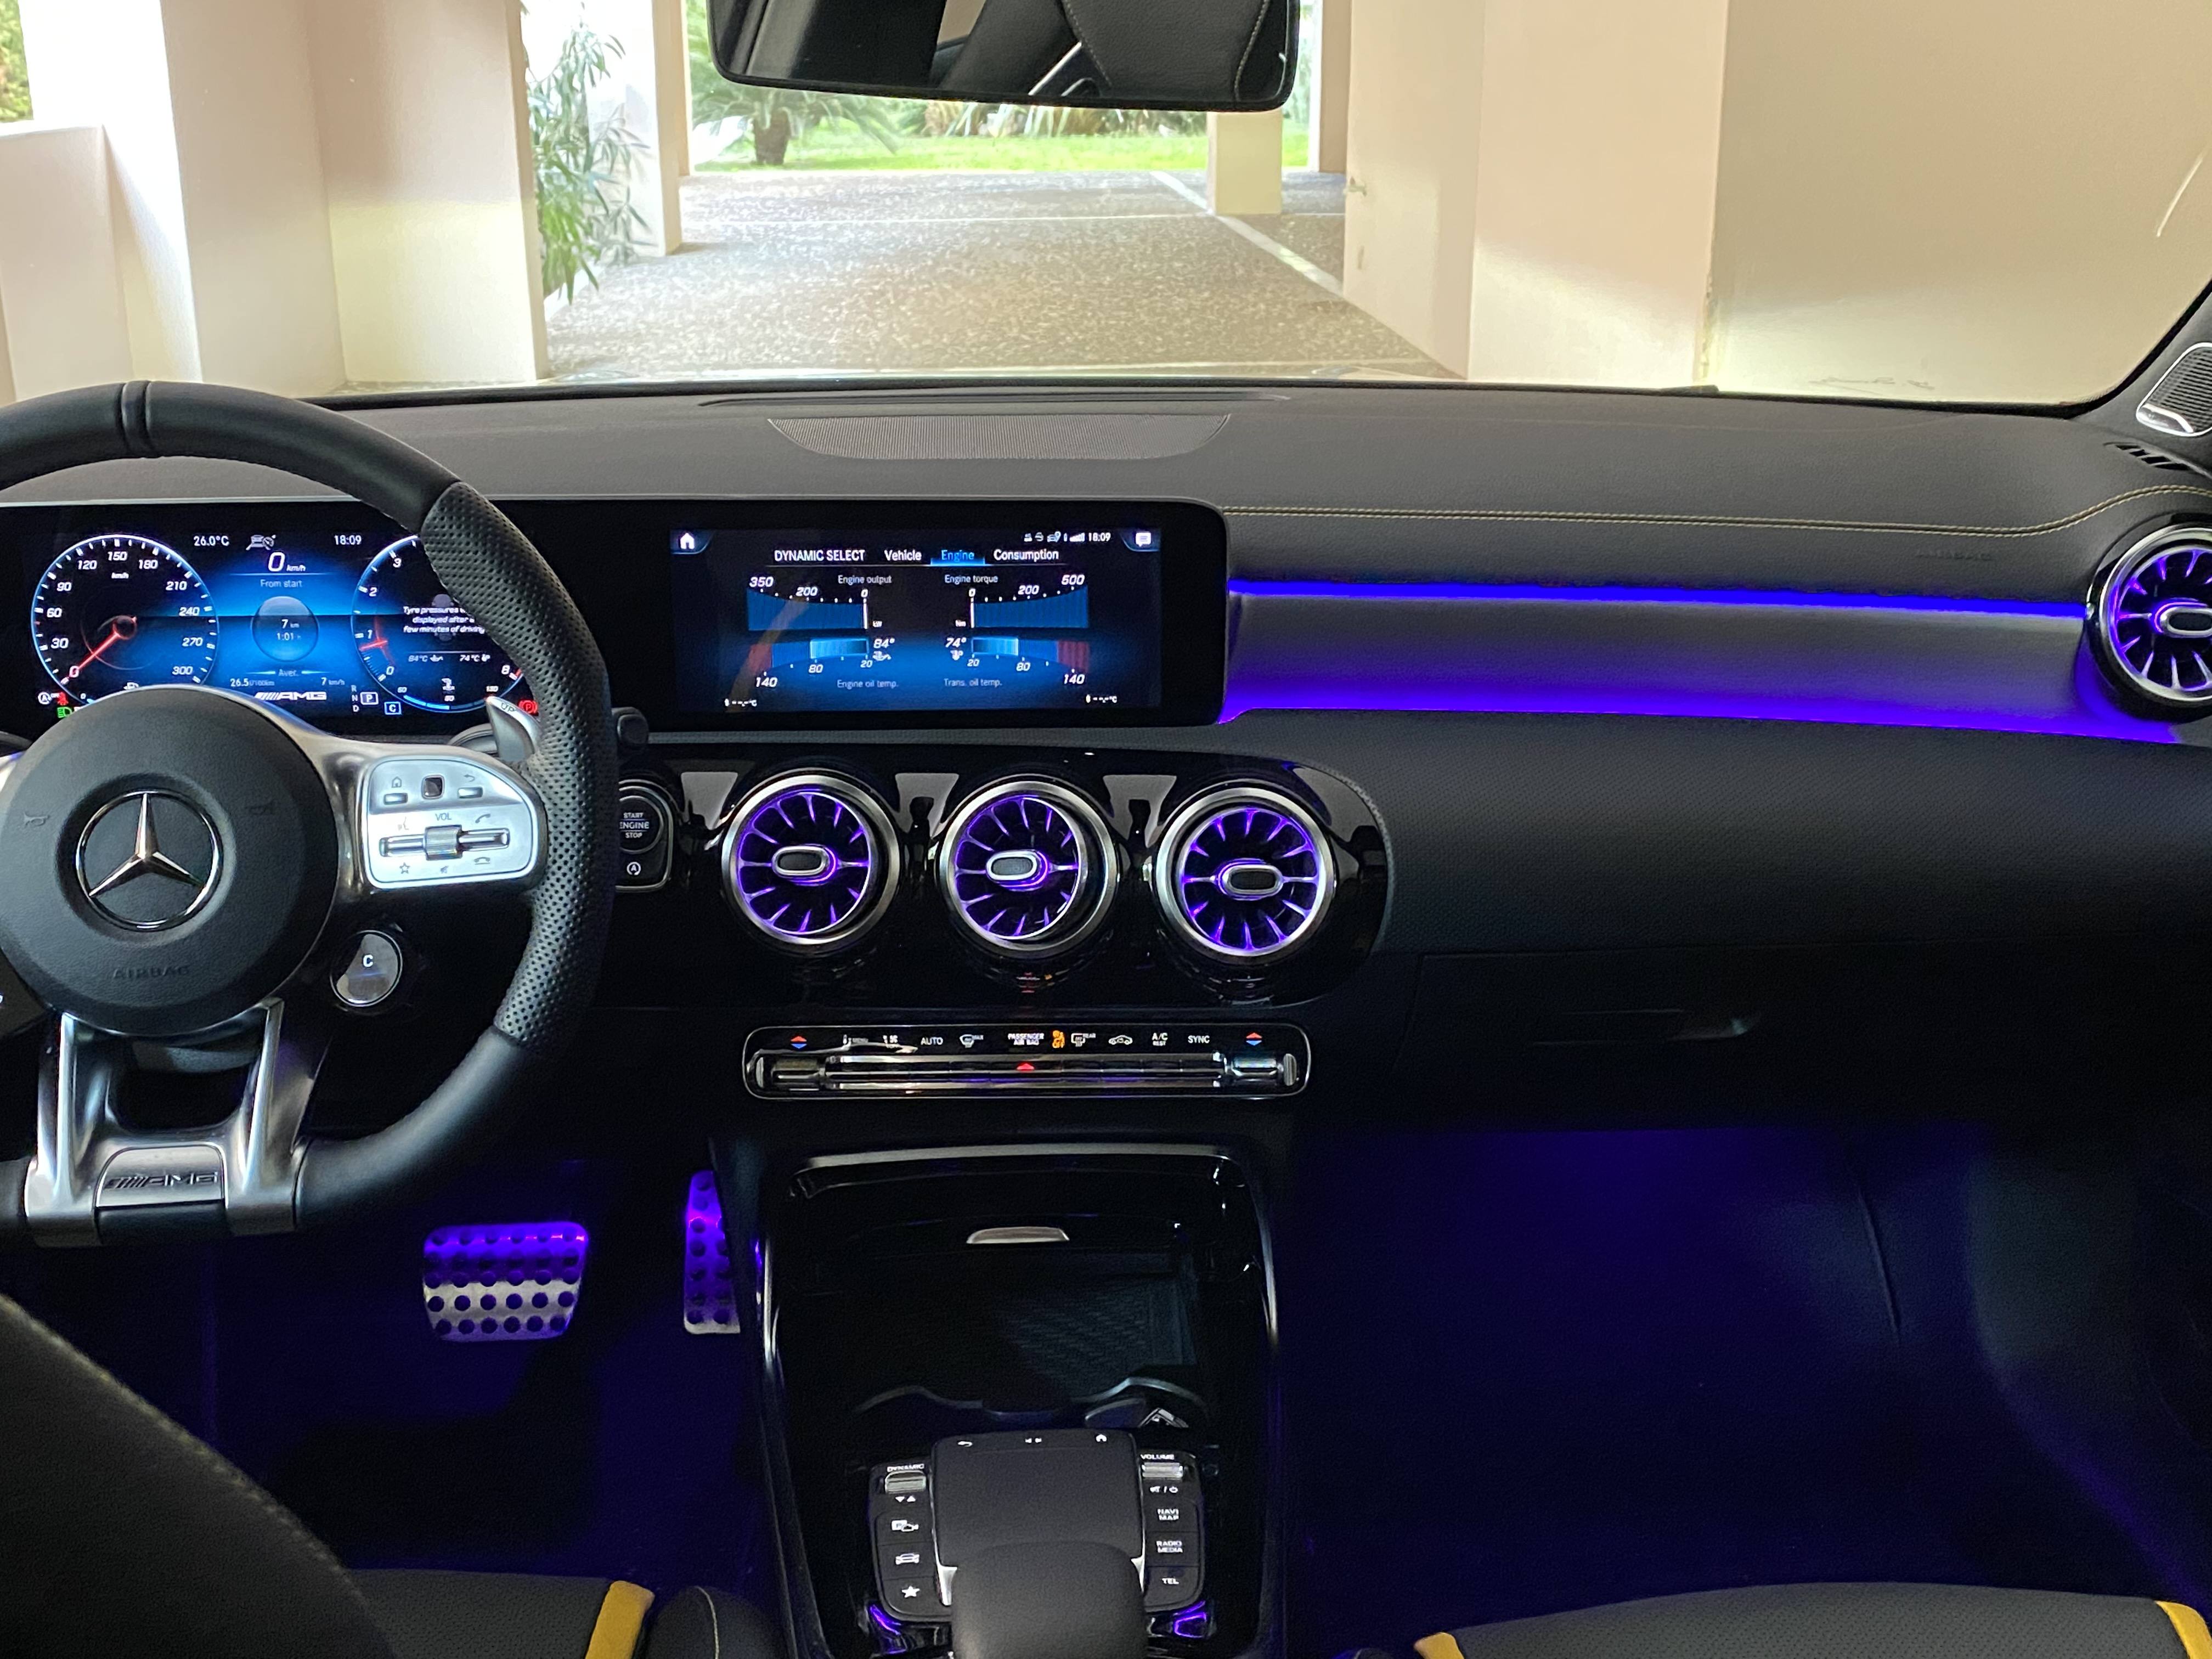 a45s_interior_front03.jpg